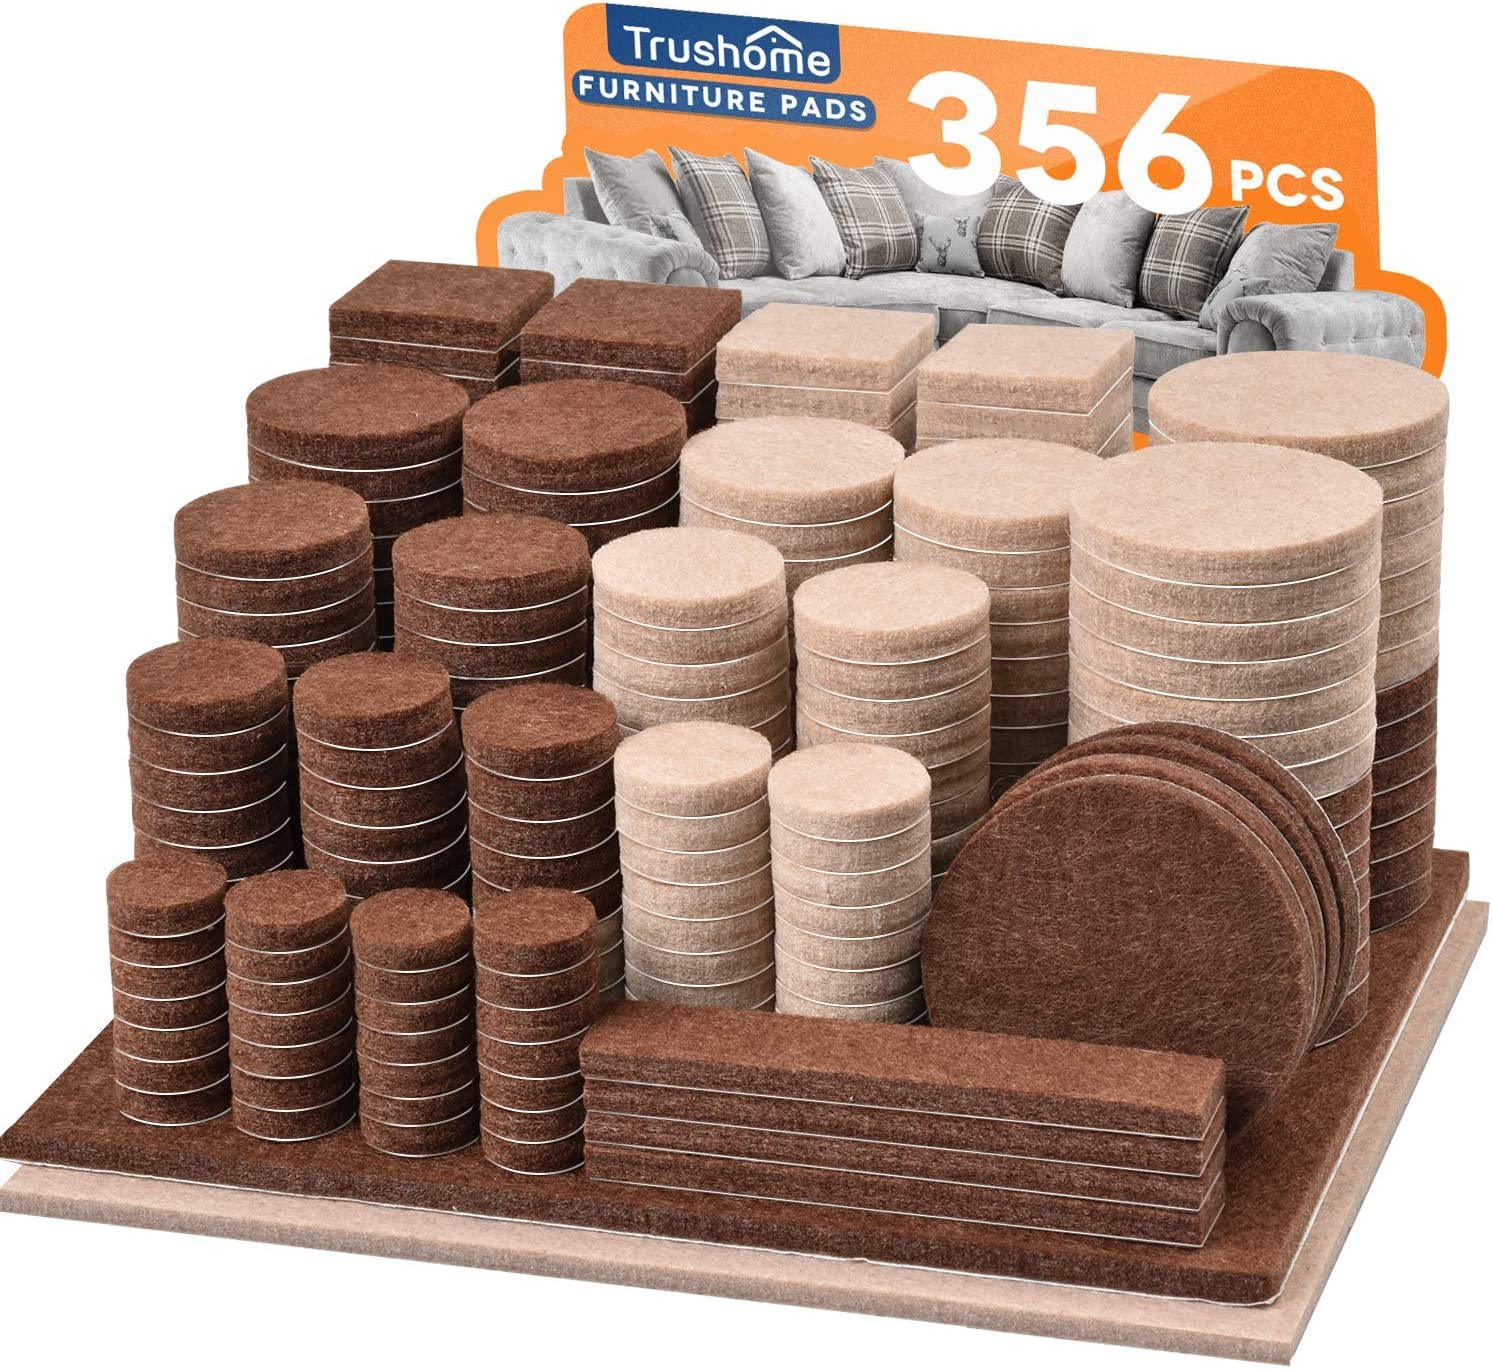 Furniture Pads 356 Max 65% OFF Pcs Limited time cheap sale Two Adhesive Felt Self P Colors